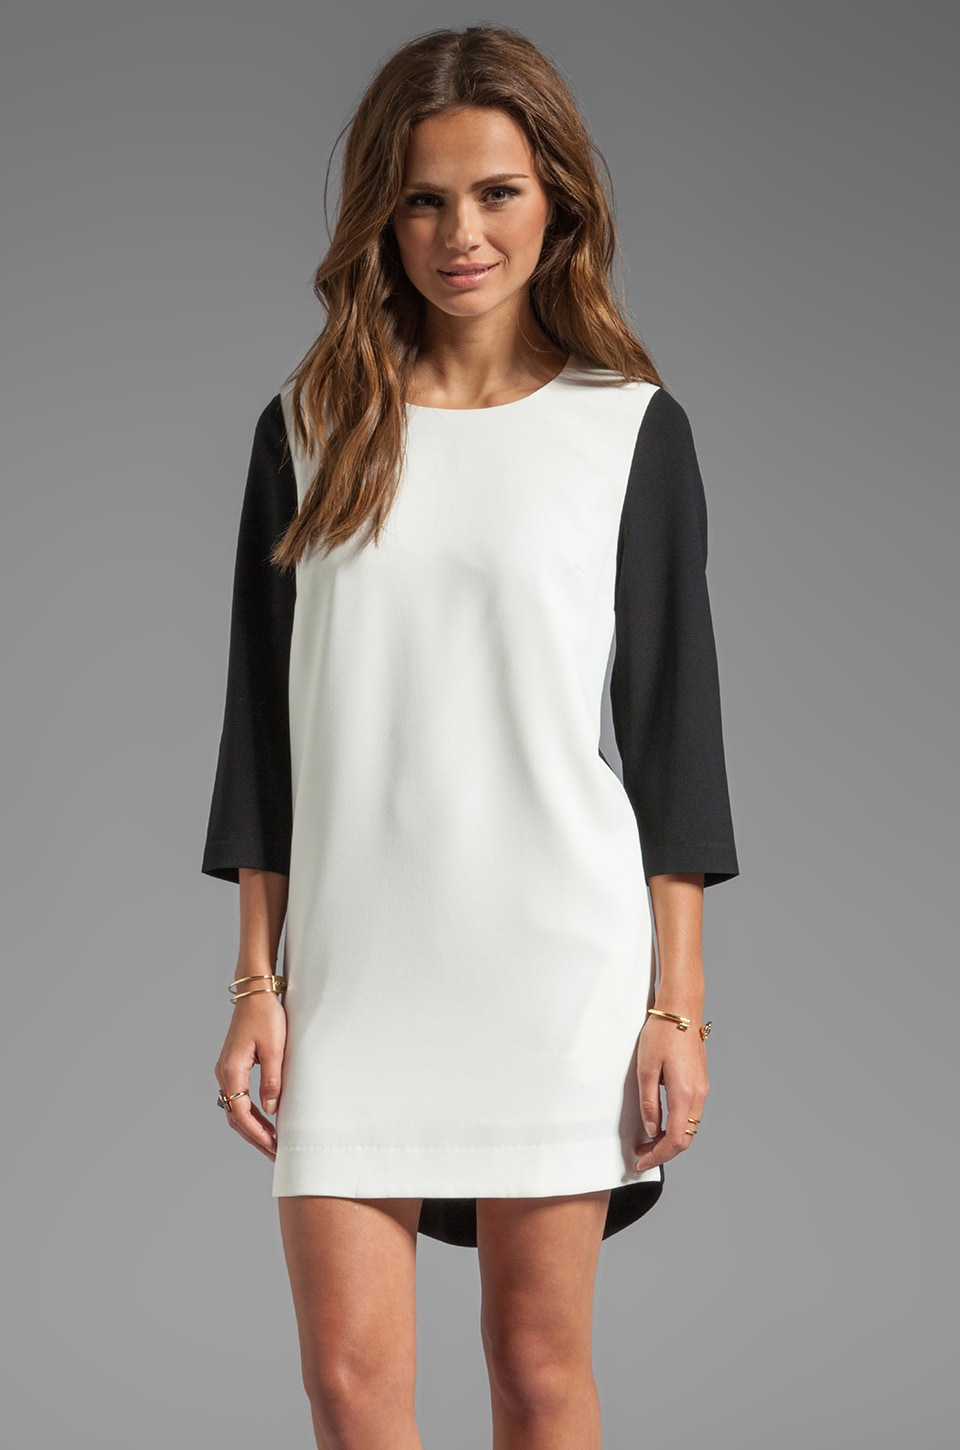 BLAQUE LABEL Color Blocked Dress in White/Black